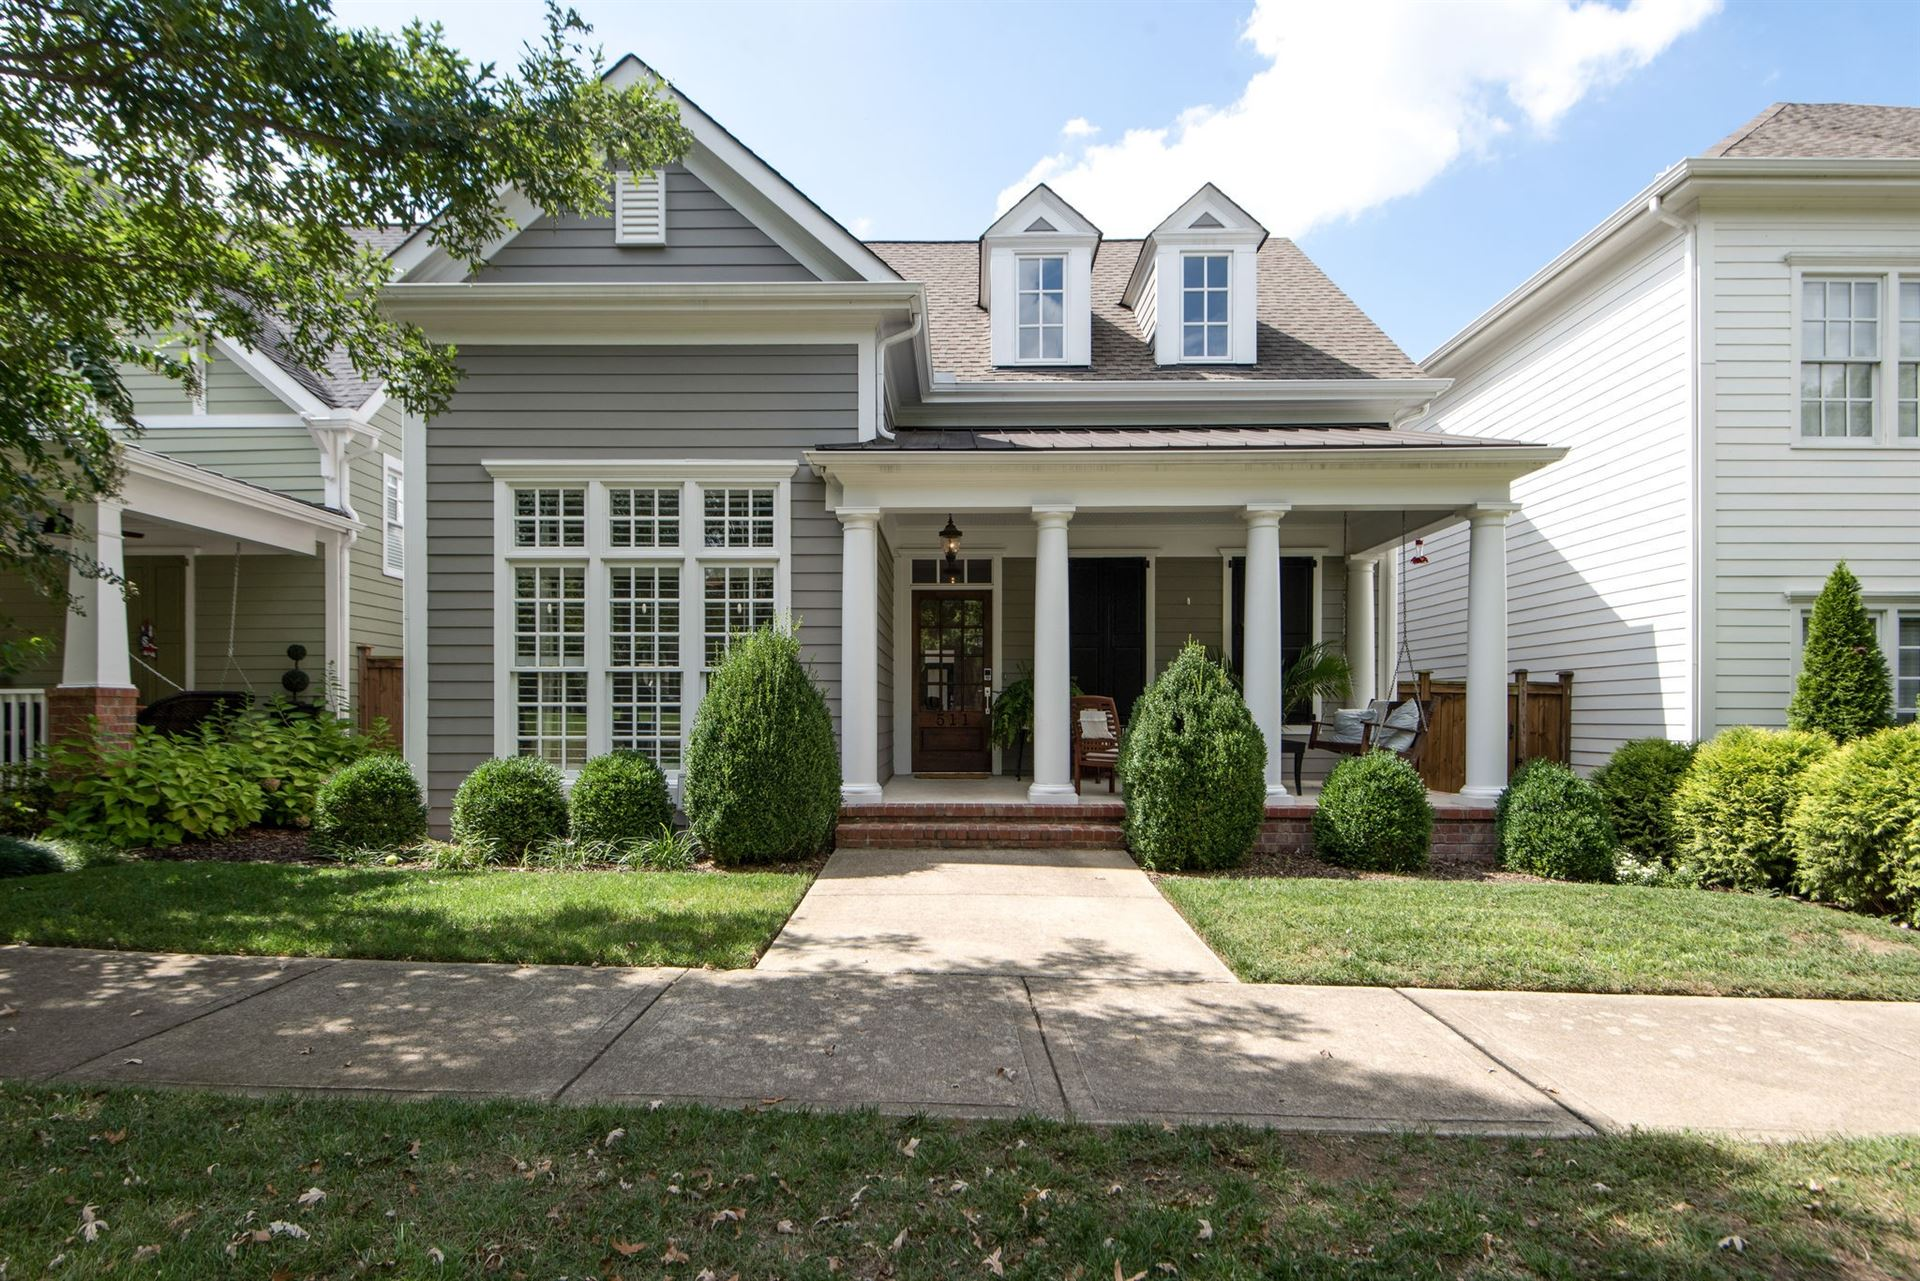 Photo of 511 Ardmore Pl, Franklin, TN 37064 (MLS # 2188718)